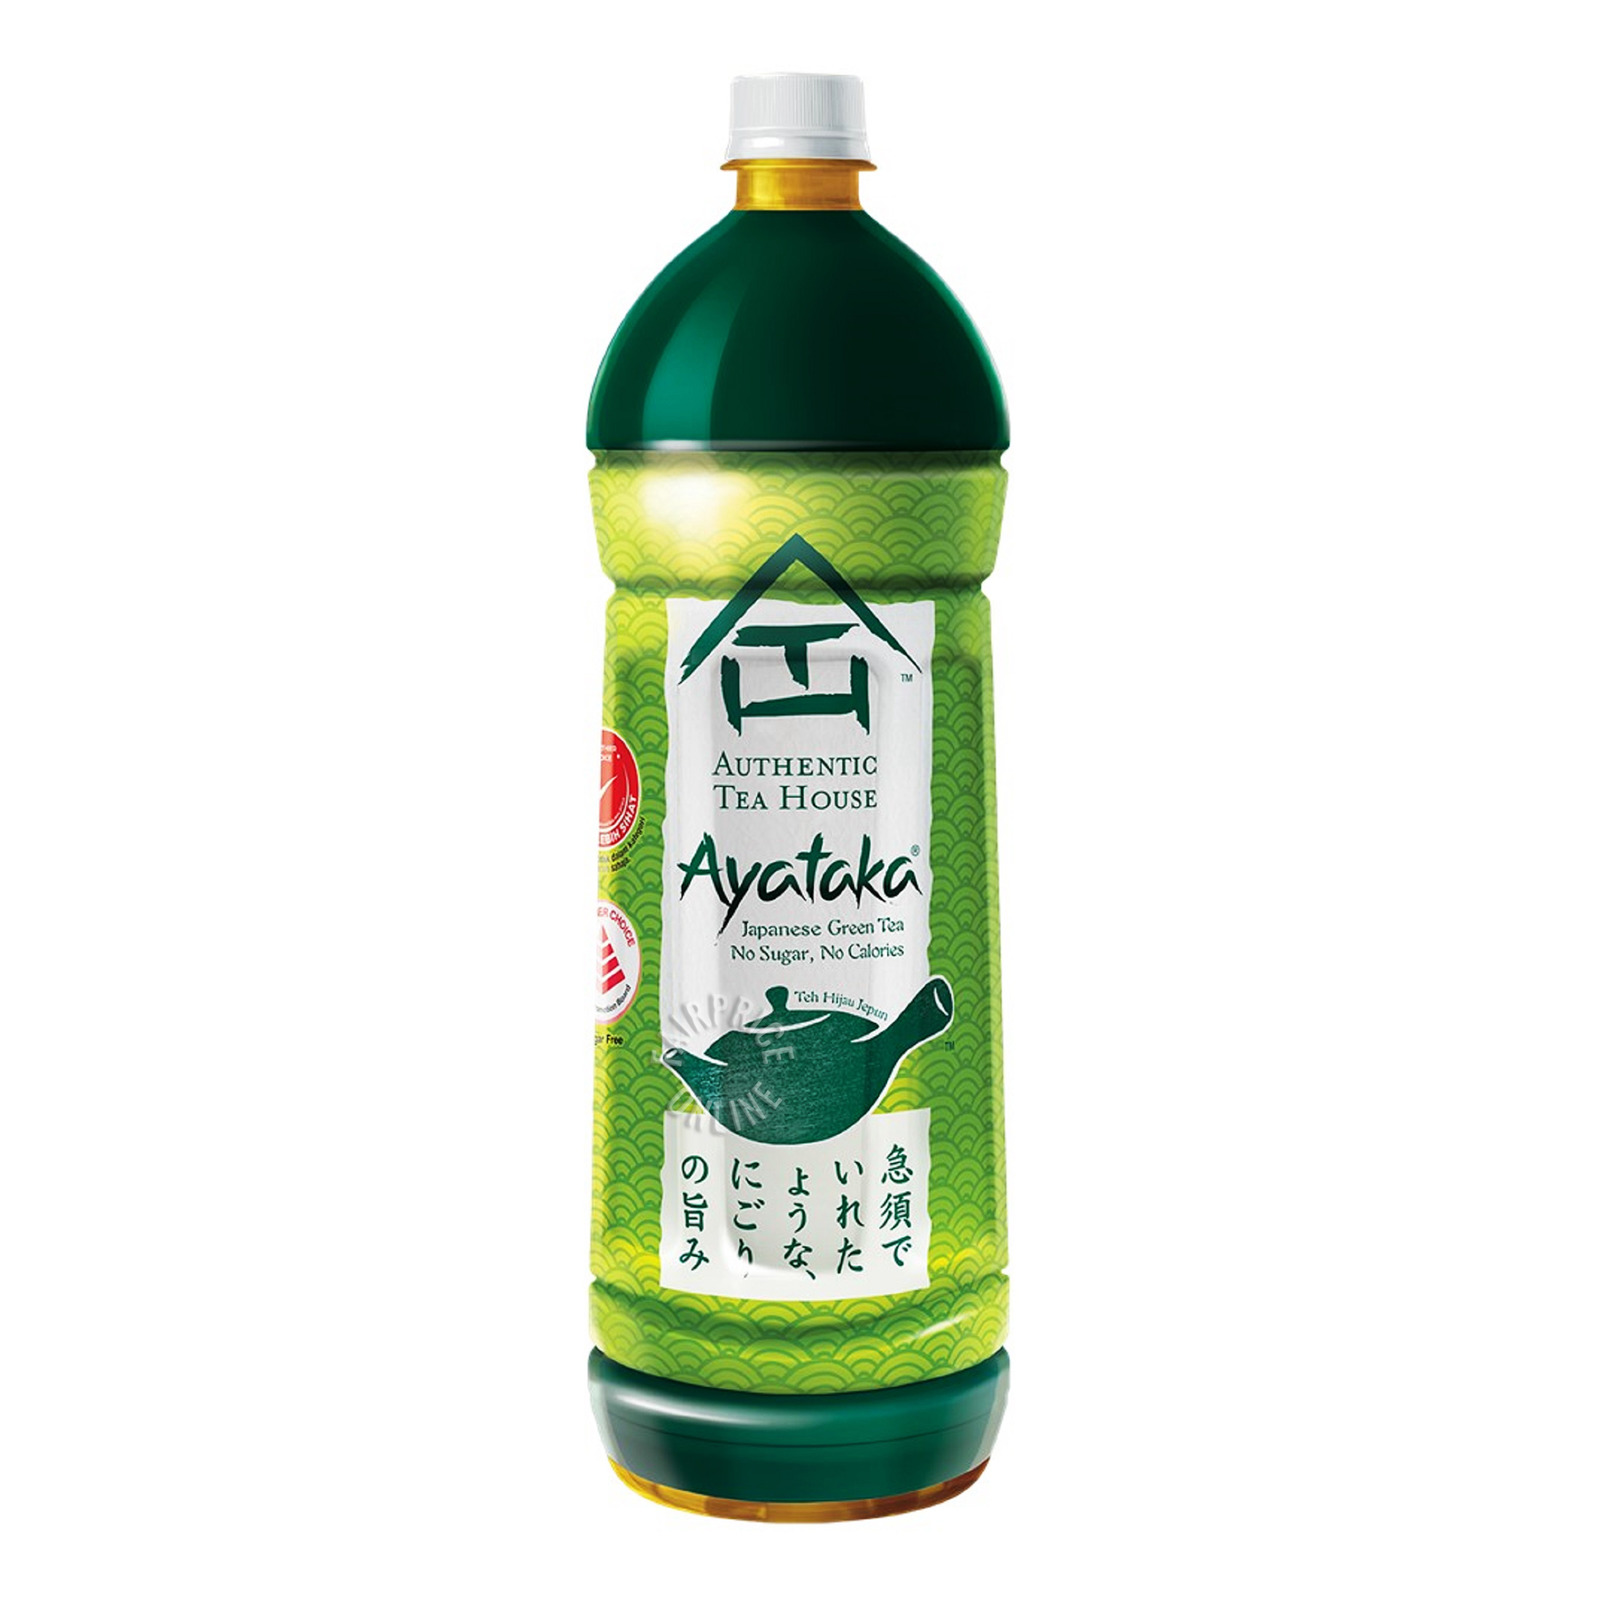 Authentic Tea House Bottle Drink - Ayataka Green Tea